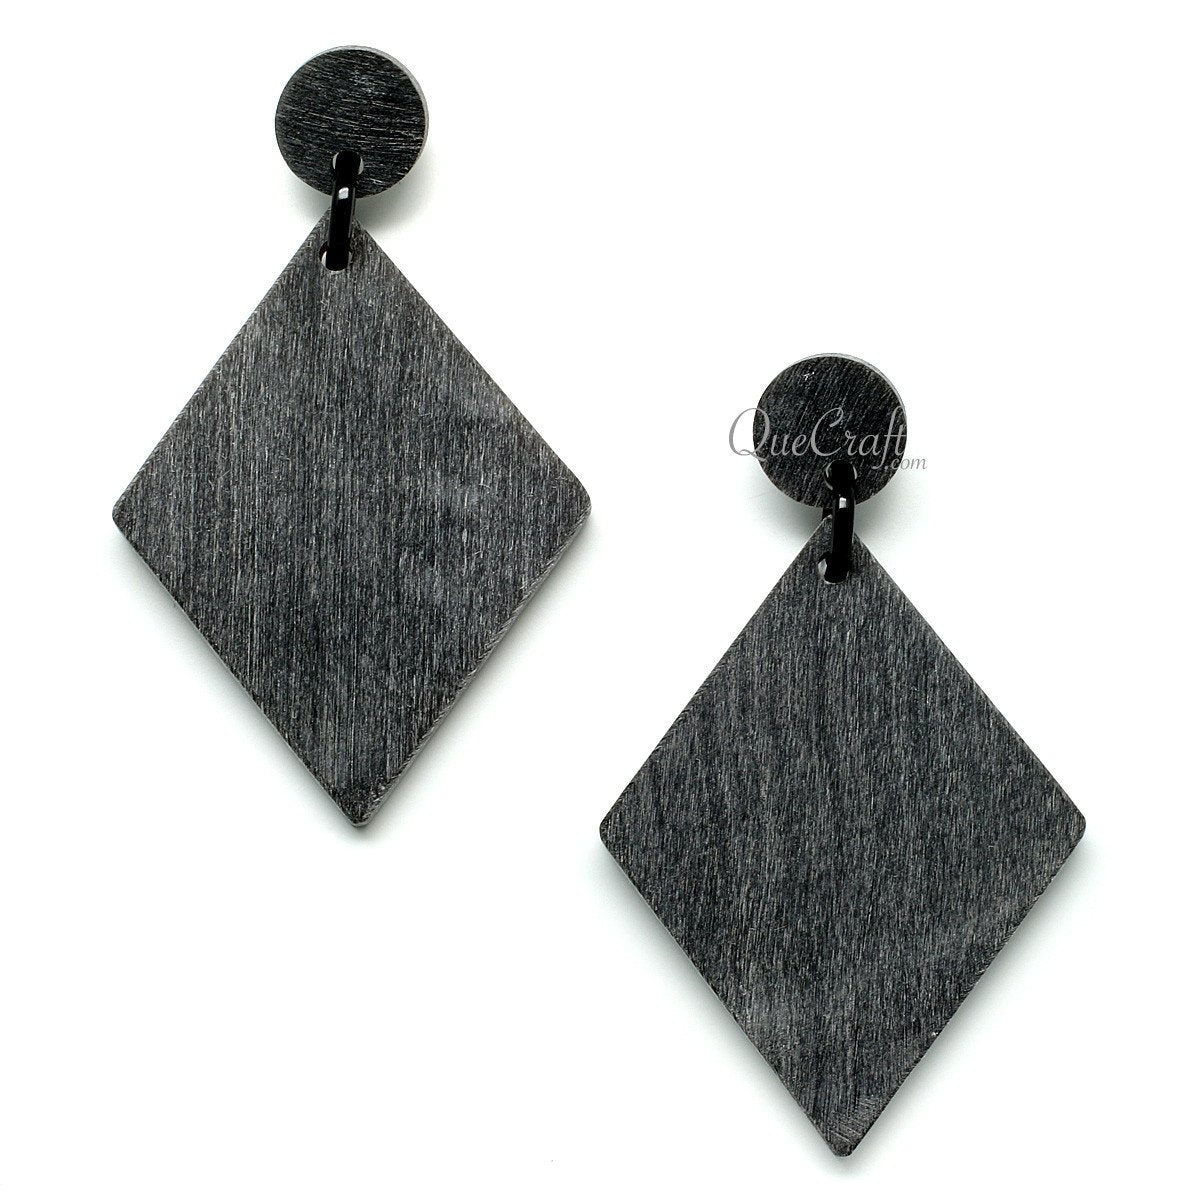 Horn Earrings #11694 - HORN.JEWELRY by QueCraft